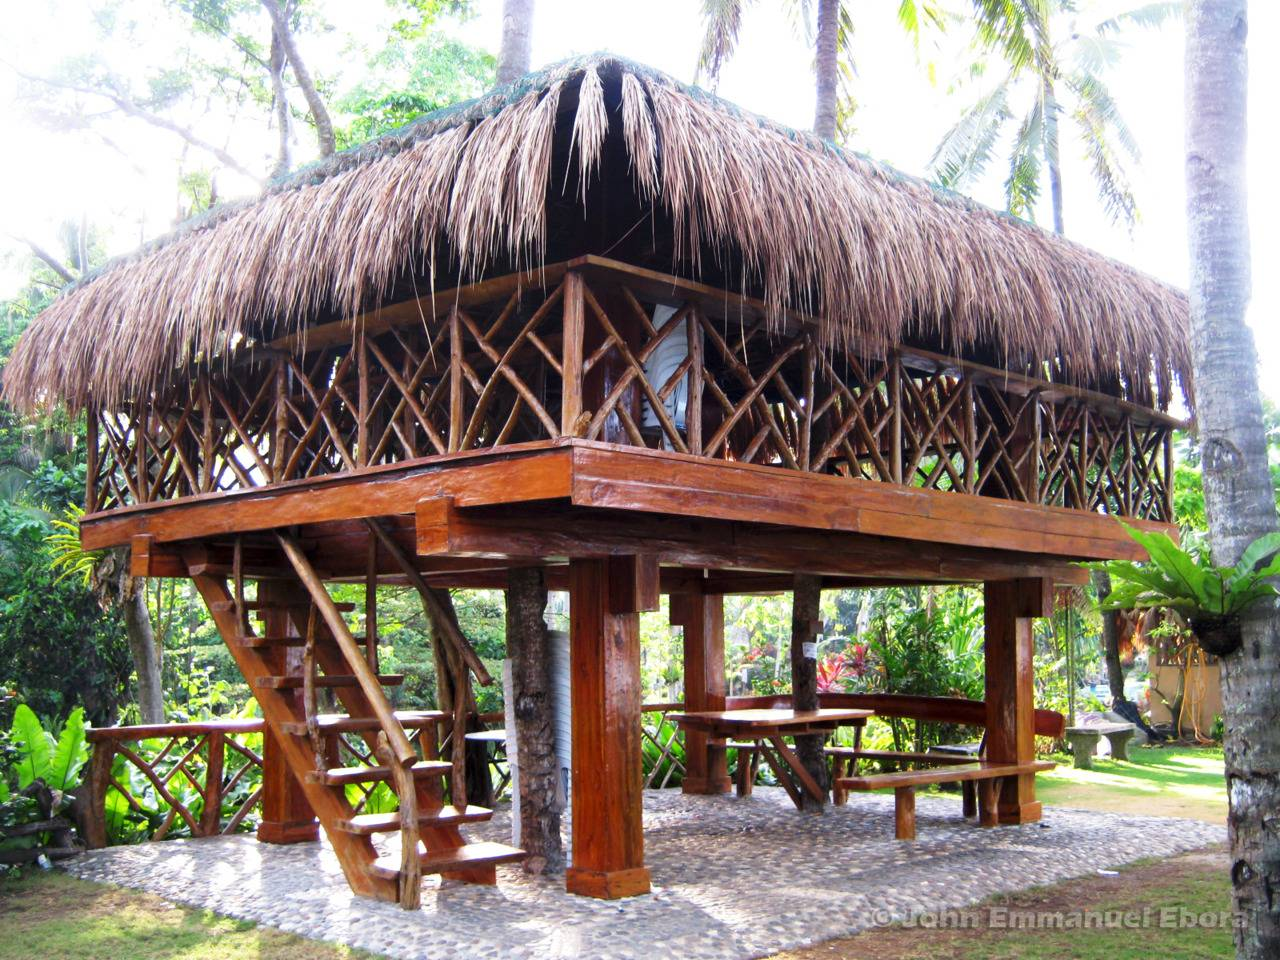 26829 Bahay Kubo as well The Balay Kubo Nipa Hut besides 344595808972449058 together with Modern Bahay Kubo as well House With Terrace In Philippines On Top. on philippine house design modern interior